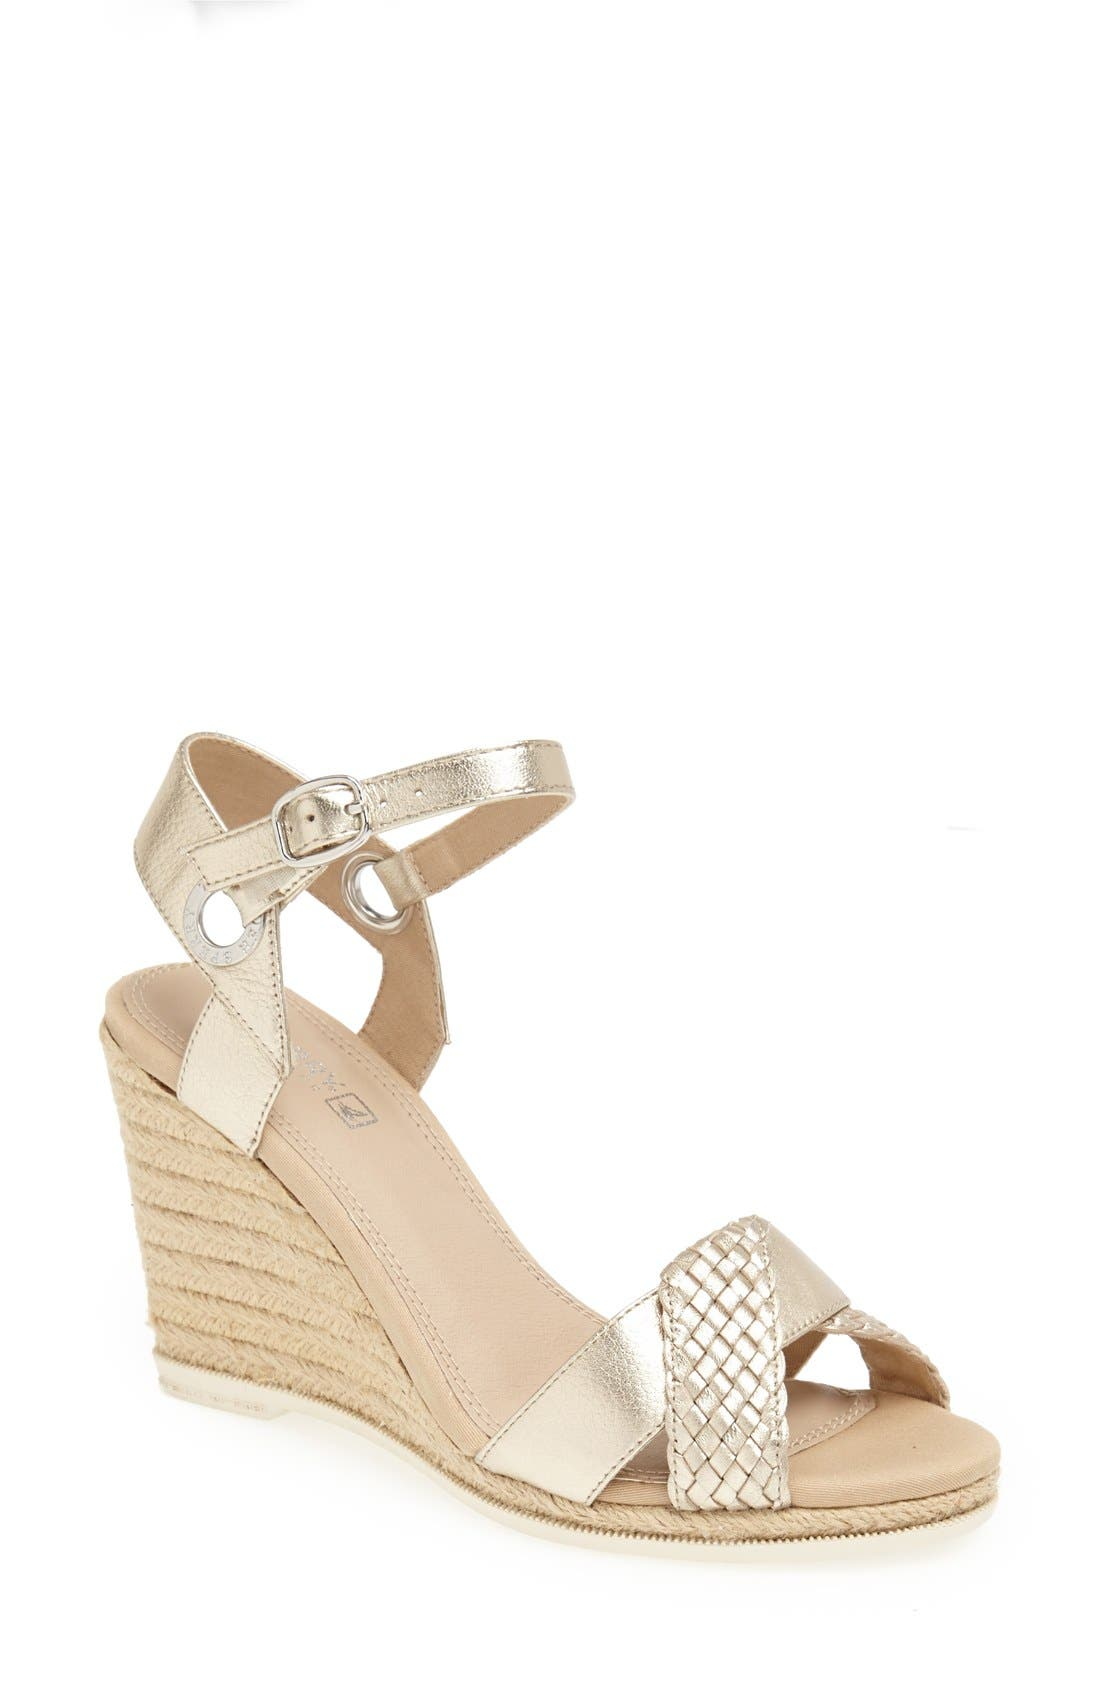 Main Image - Sperry Top-Sider® 'Saylor' Wedge Sandal (Women)